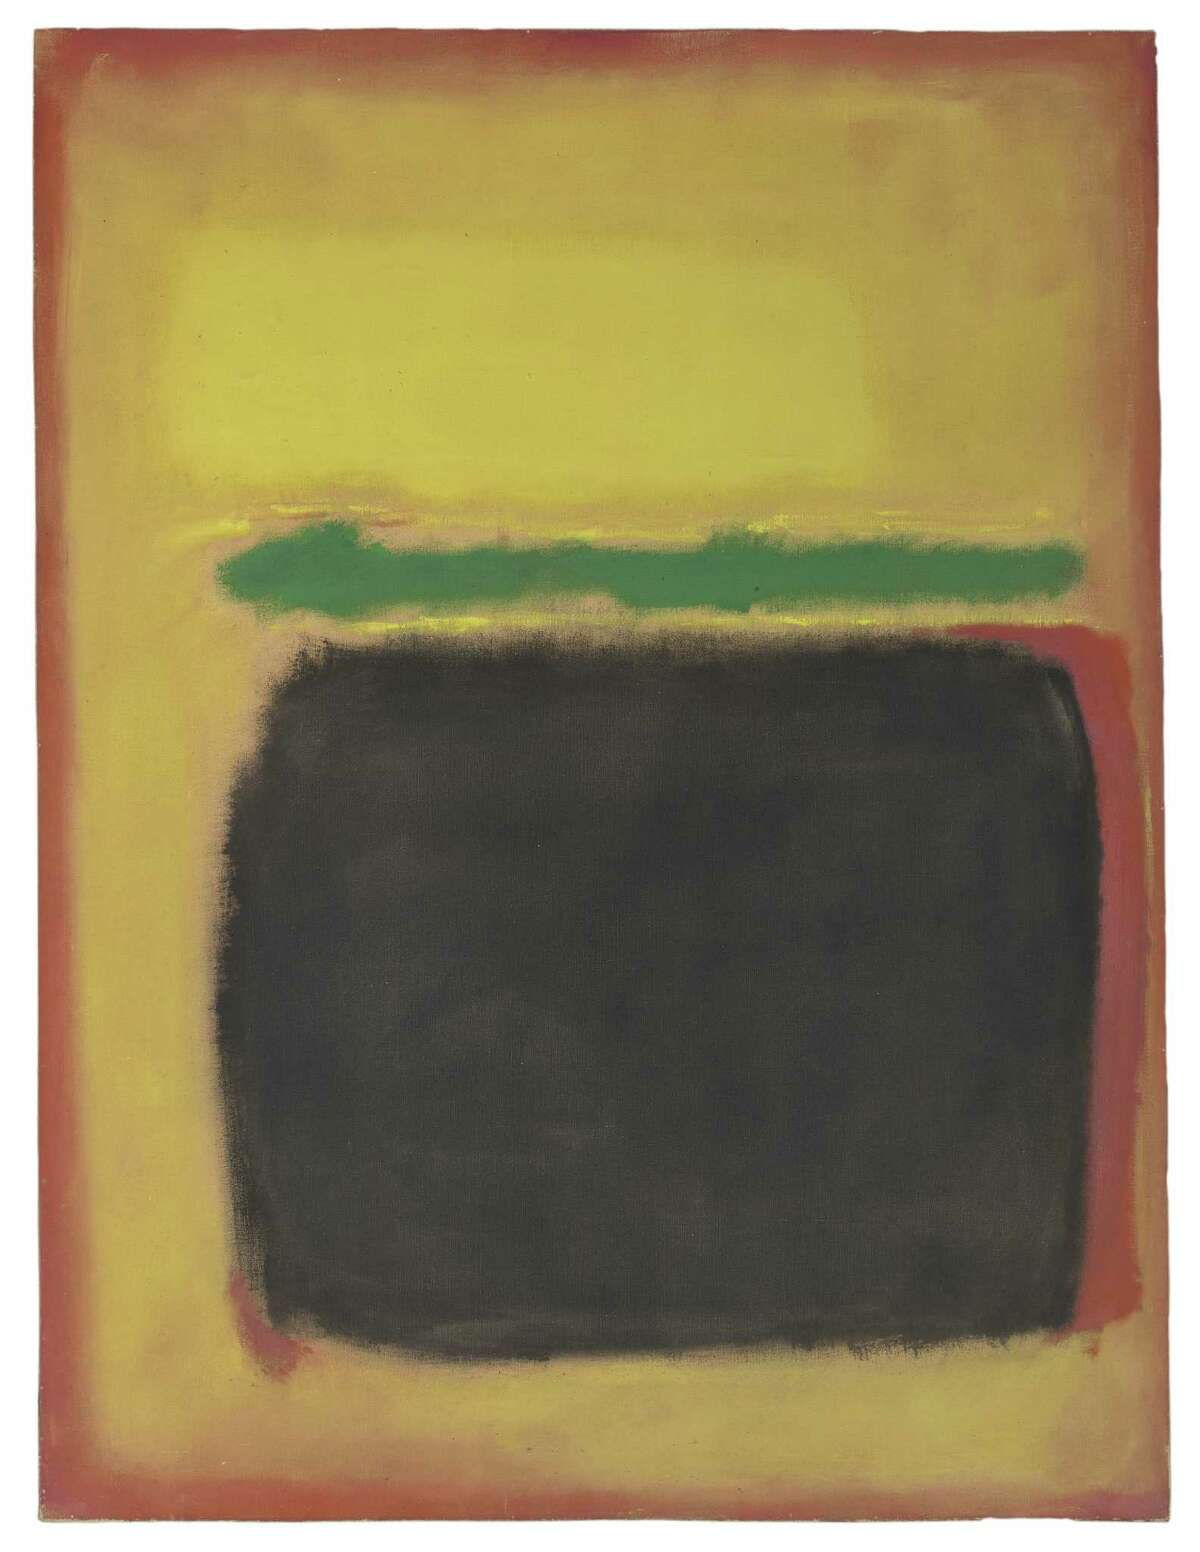 """Mark Rothko's """"No. 11 (Yellow, Green, and Black)"""" from 1950 was gifted to the Yale University Art Gallery by the Friday Foundation in honor of Richard E. Lang and Jane Lang Davis."""